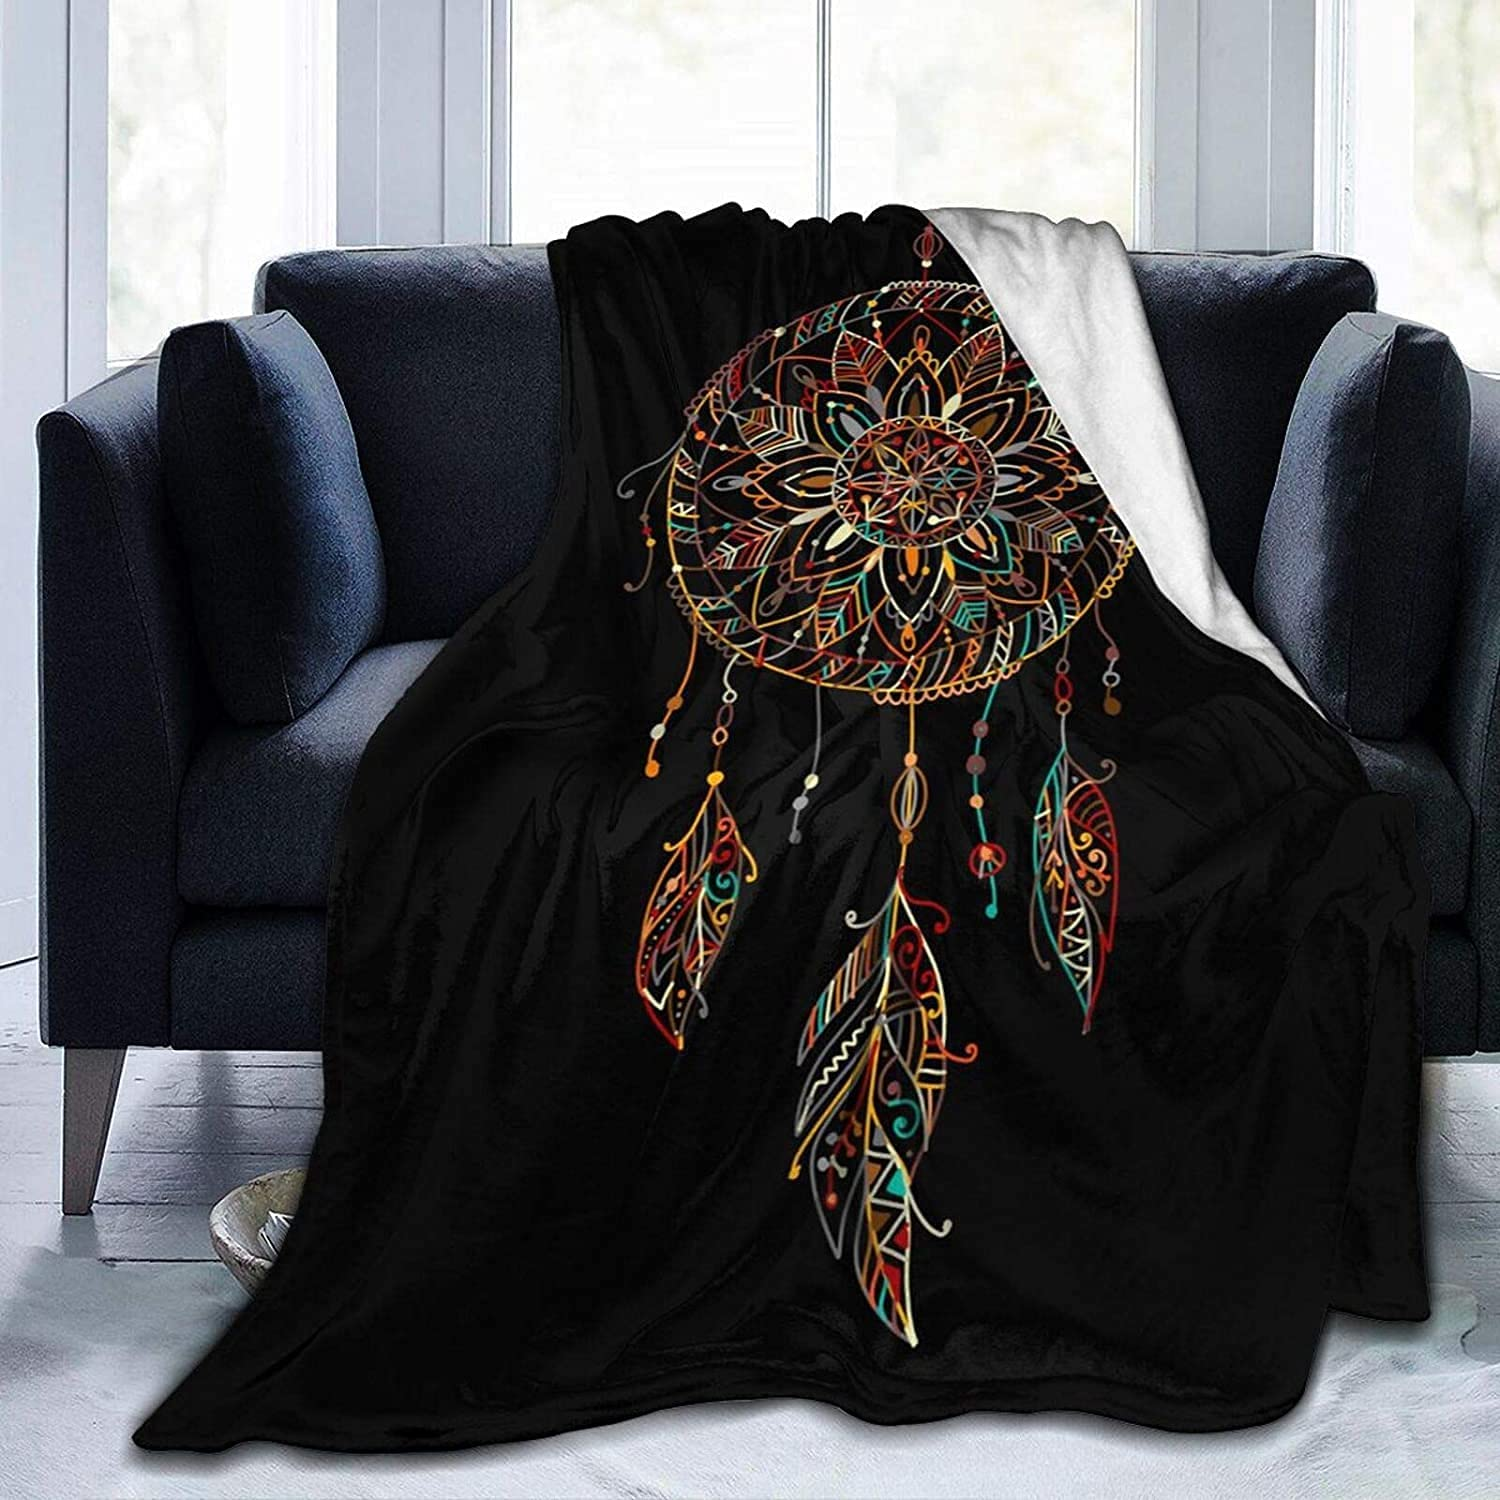 Dreamcatcher Limited time sale Throw Blankets Durable Lightweight 50 Blanket Recommendation